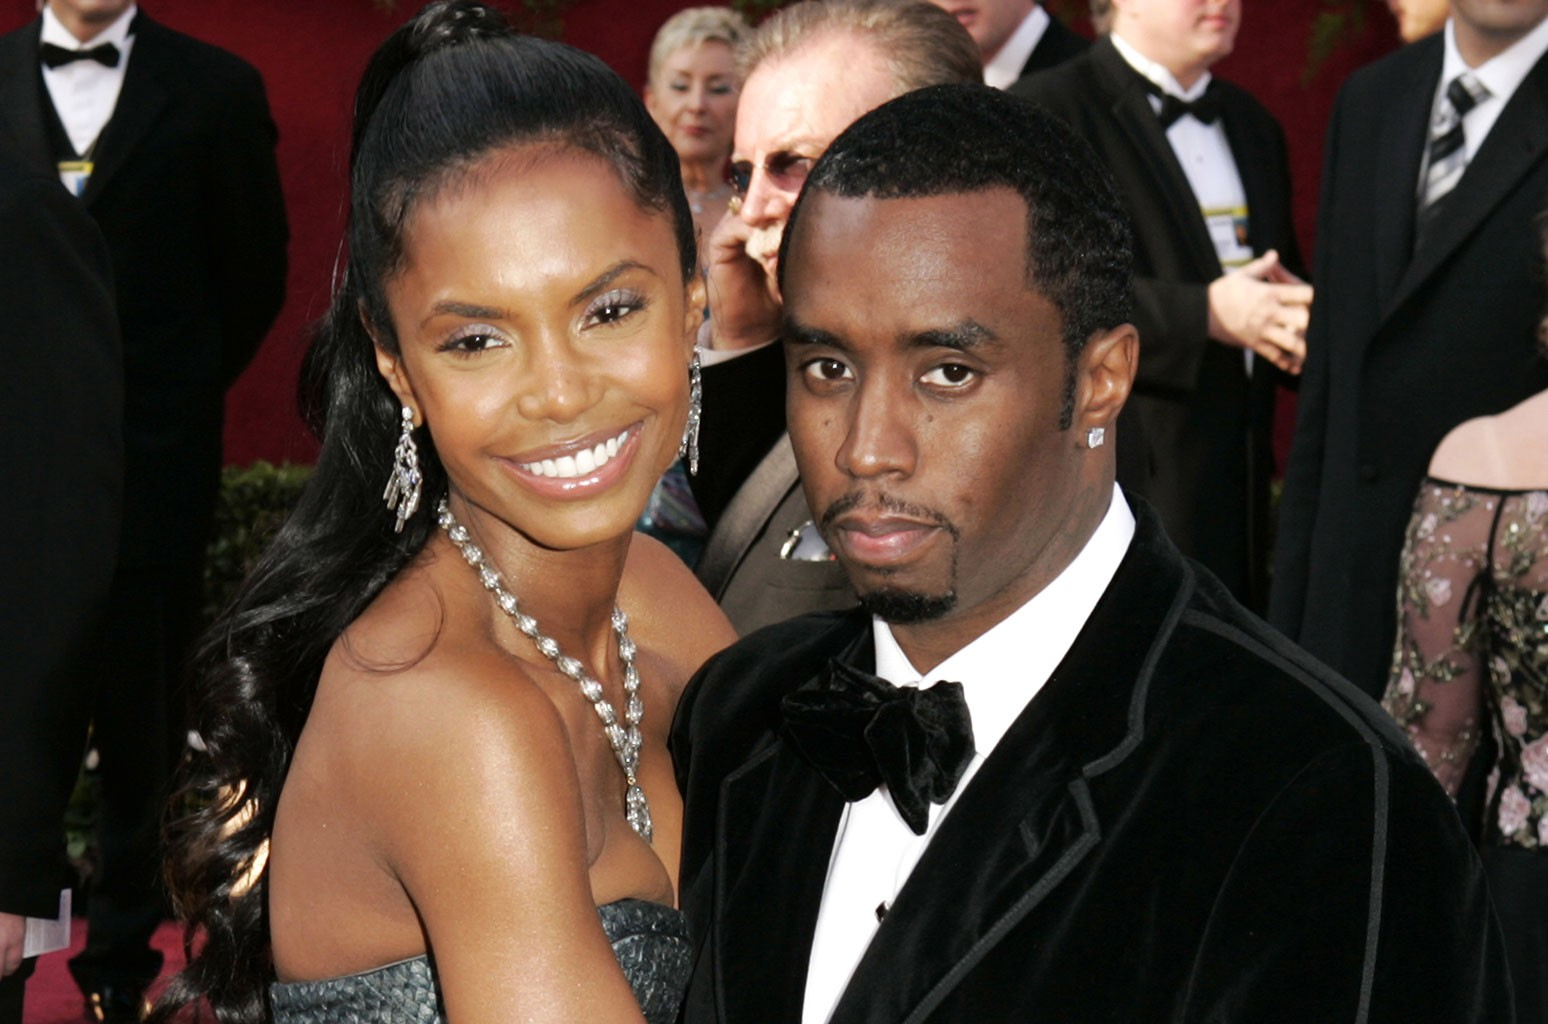 Kim Porter and Sean 'P. Diddy' Combs